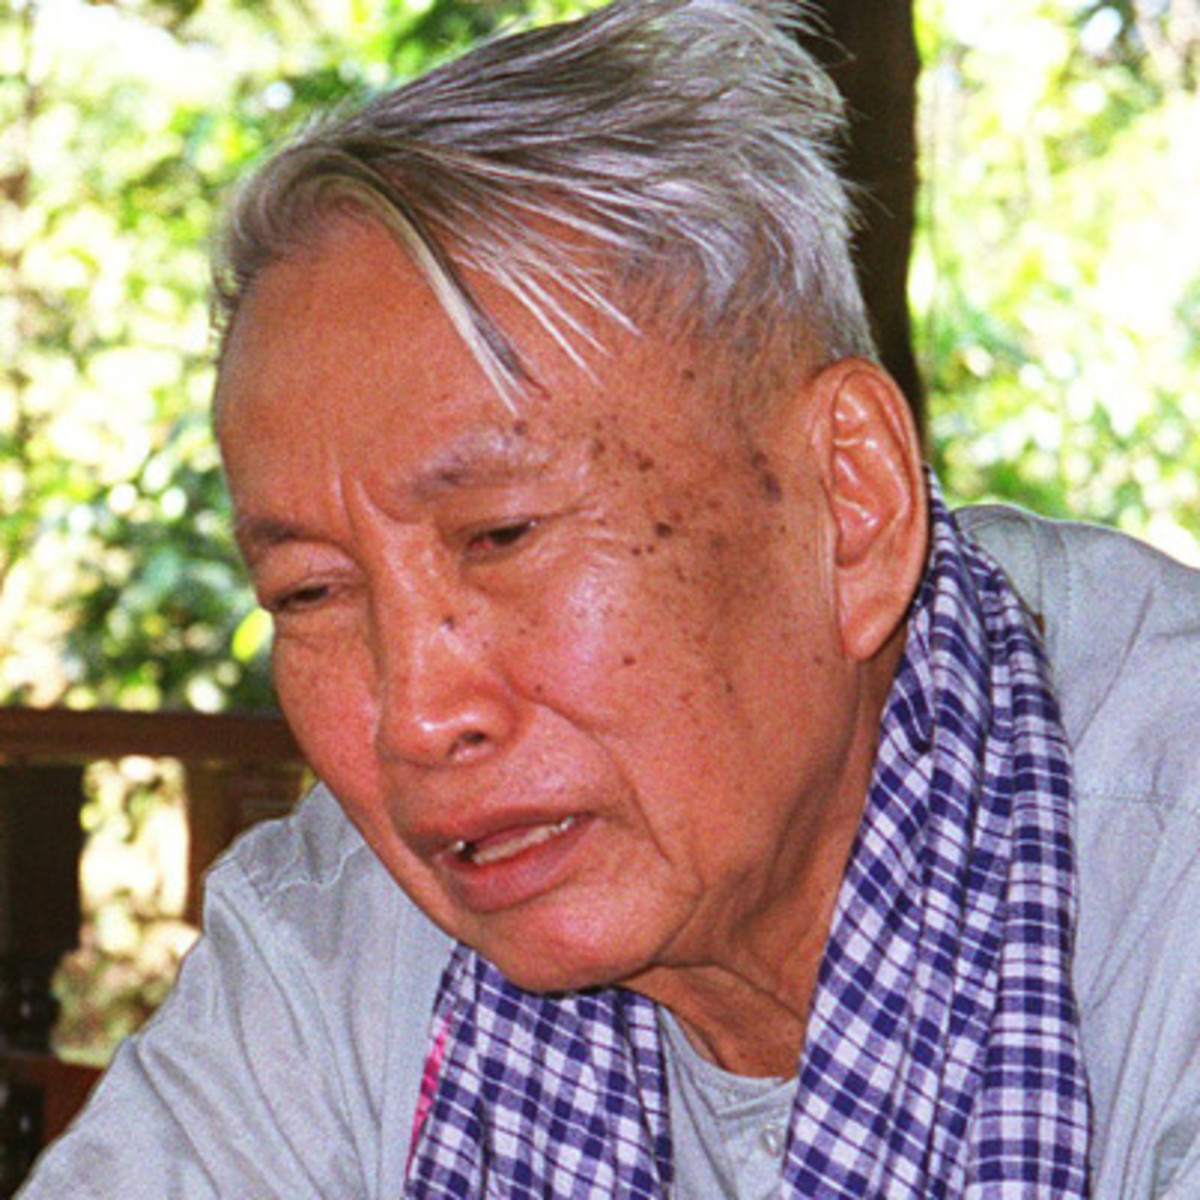 Pol Pot Quotes Pol Pot  Government Official Dictator  Biography